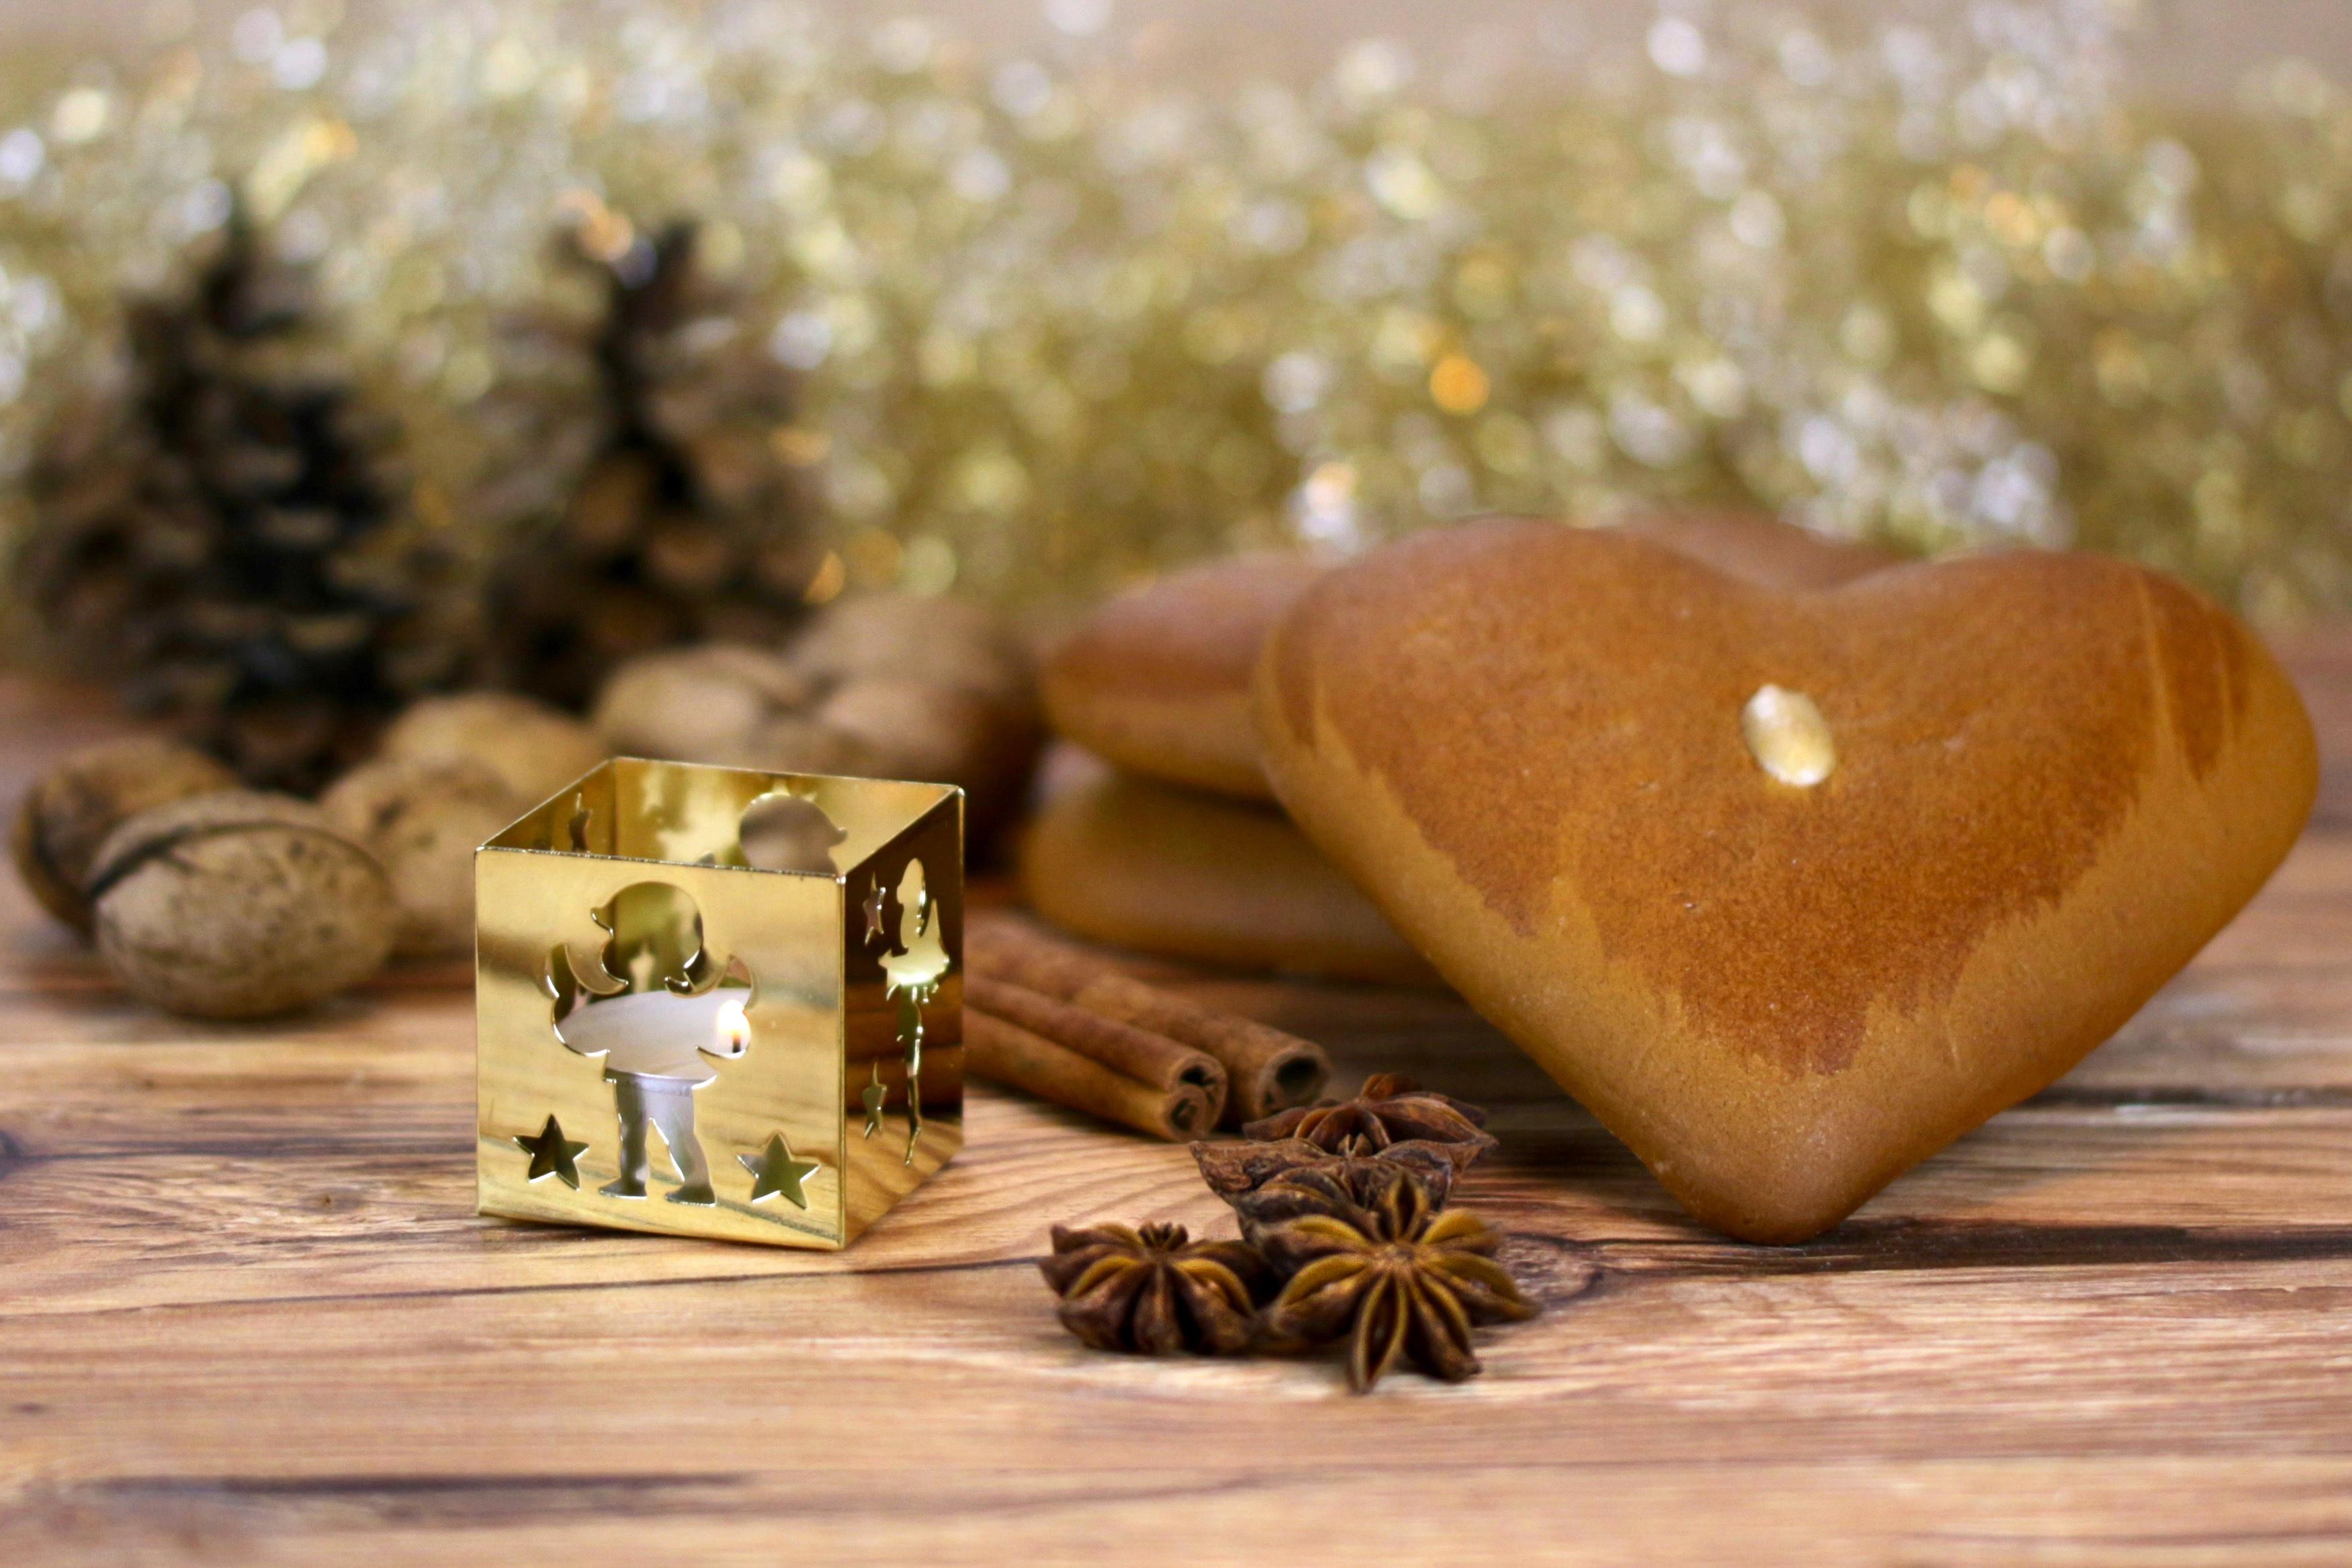 candlelight anise cinnamon gingerbread heart golden